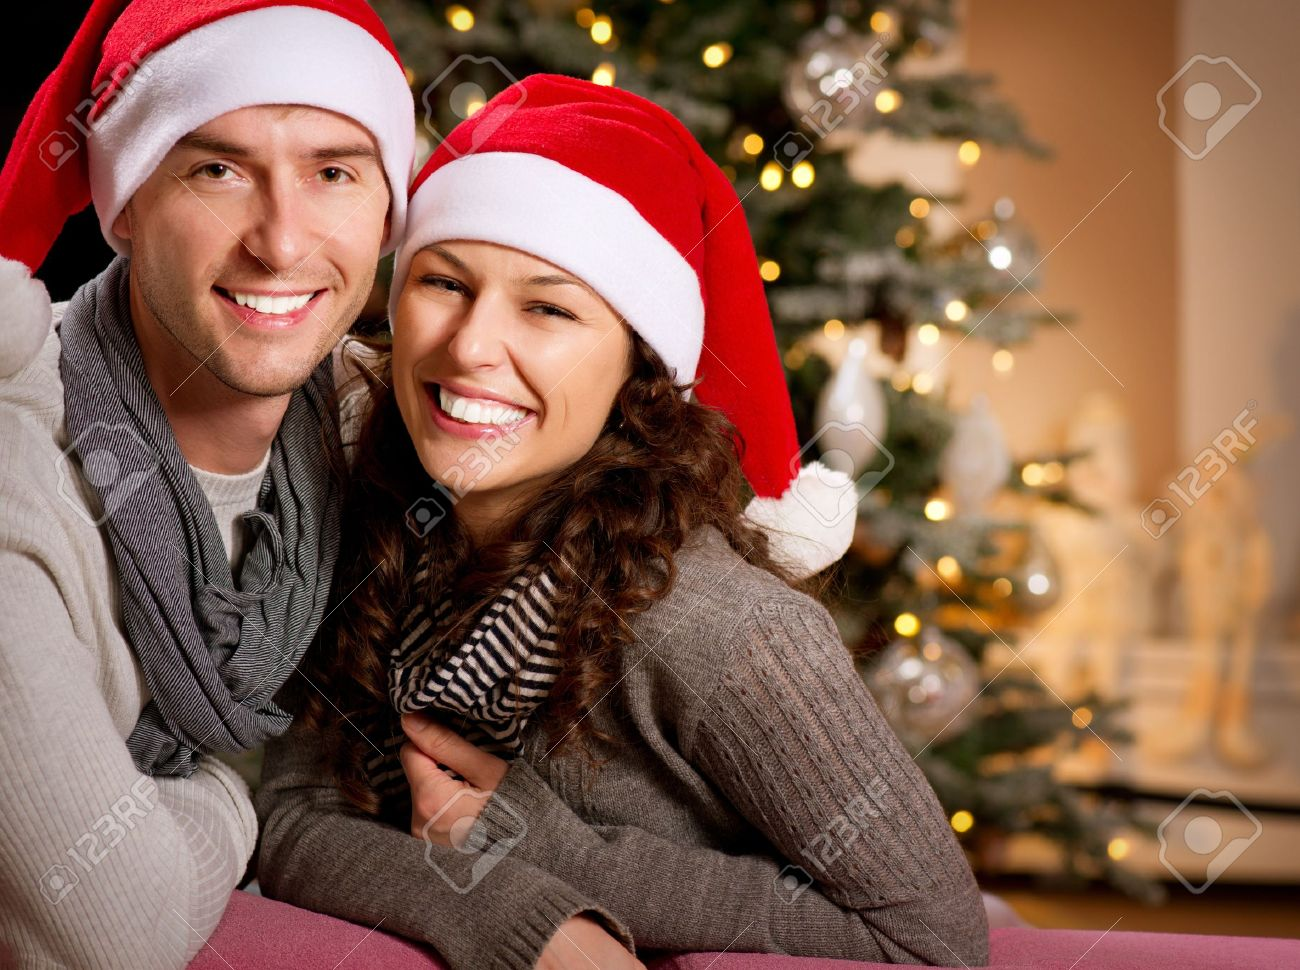 Christmas Happy Couple At Home Celebrating Christmas Stock Photo ...